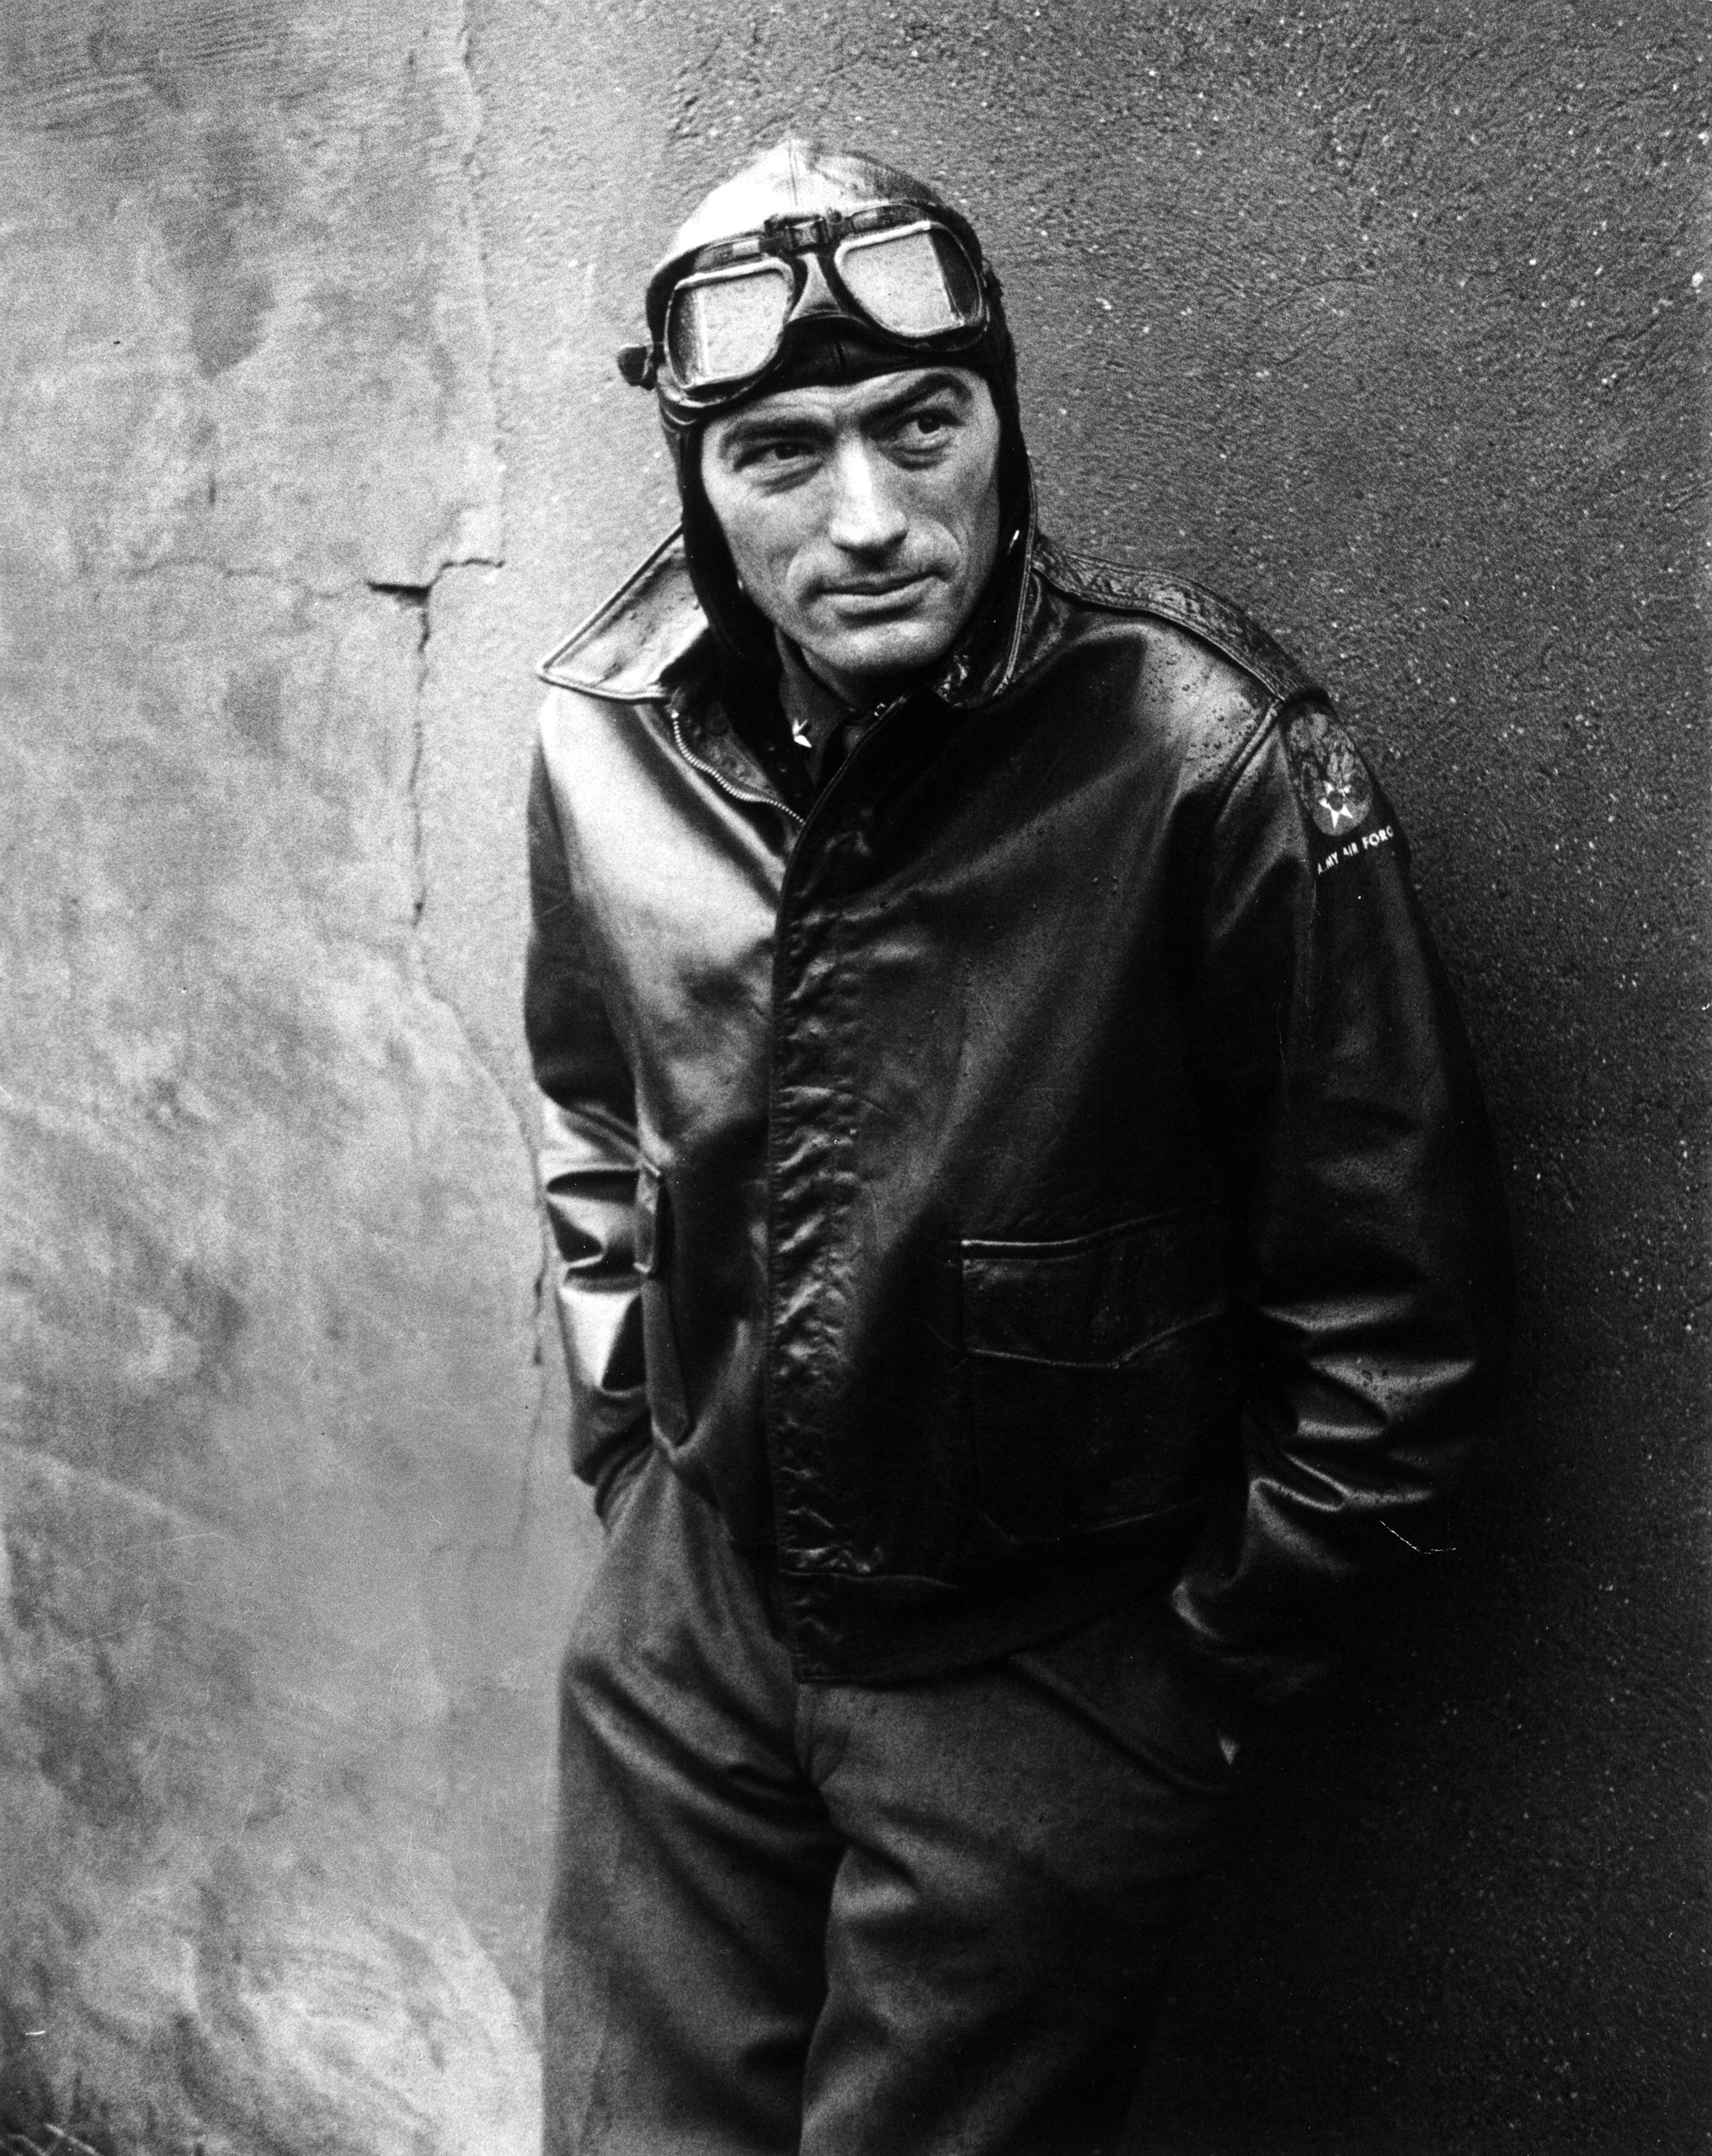 """Gregory Peck costumed as WWII American Air Forces bomber pilot for movie """"Twelve O'Clock High."""" 1950."""